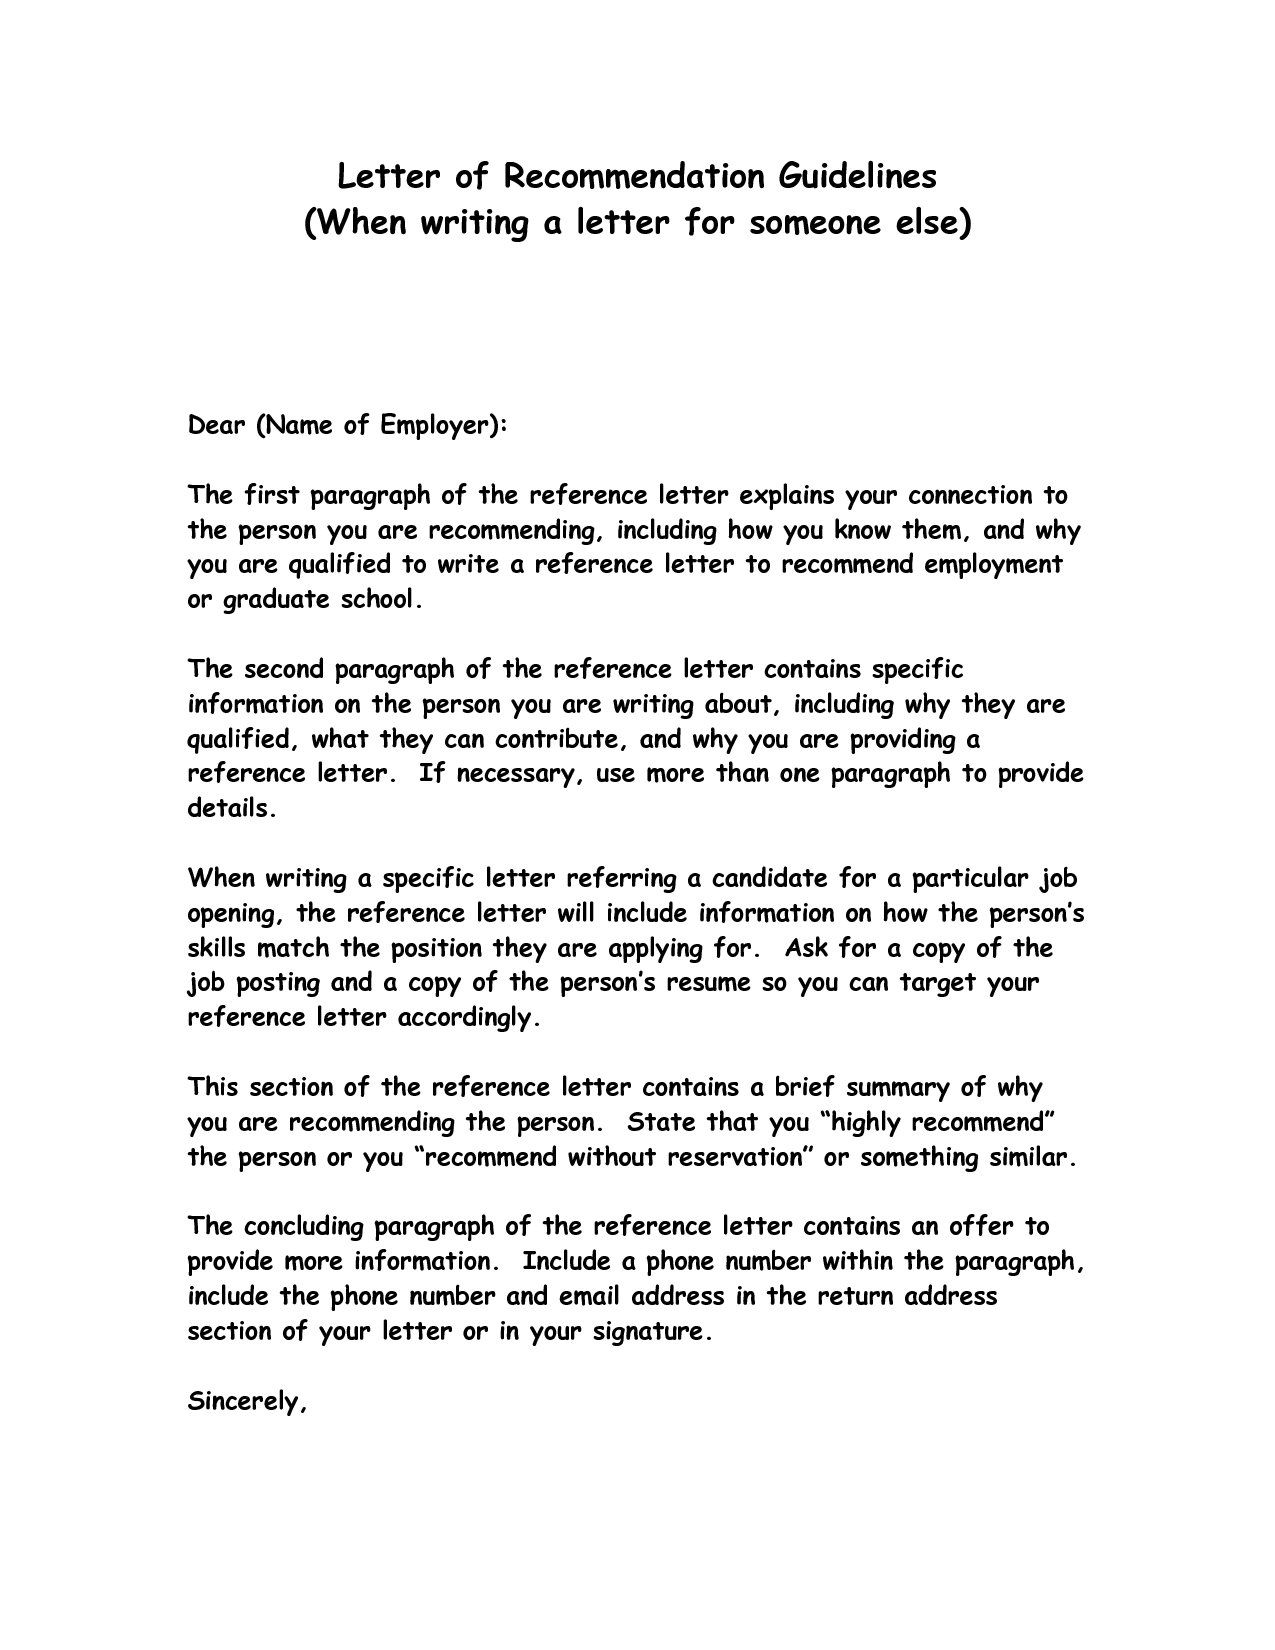 example letter of recommendation how to write a reference letter letter letter example 21552 | 385c7abbf5eab519b7841e40d1607ecf